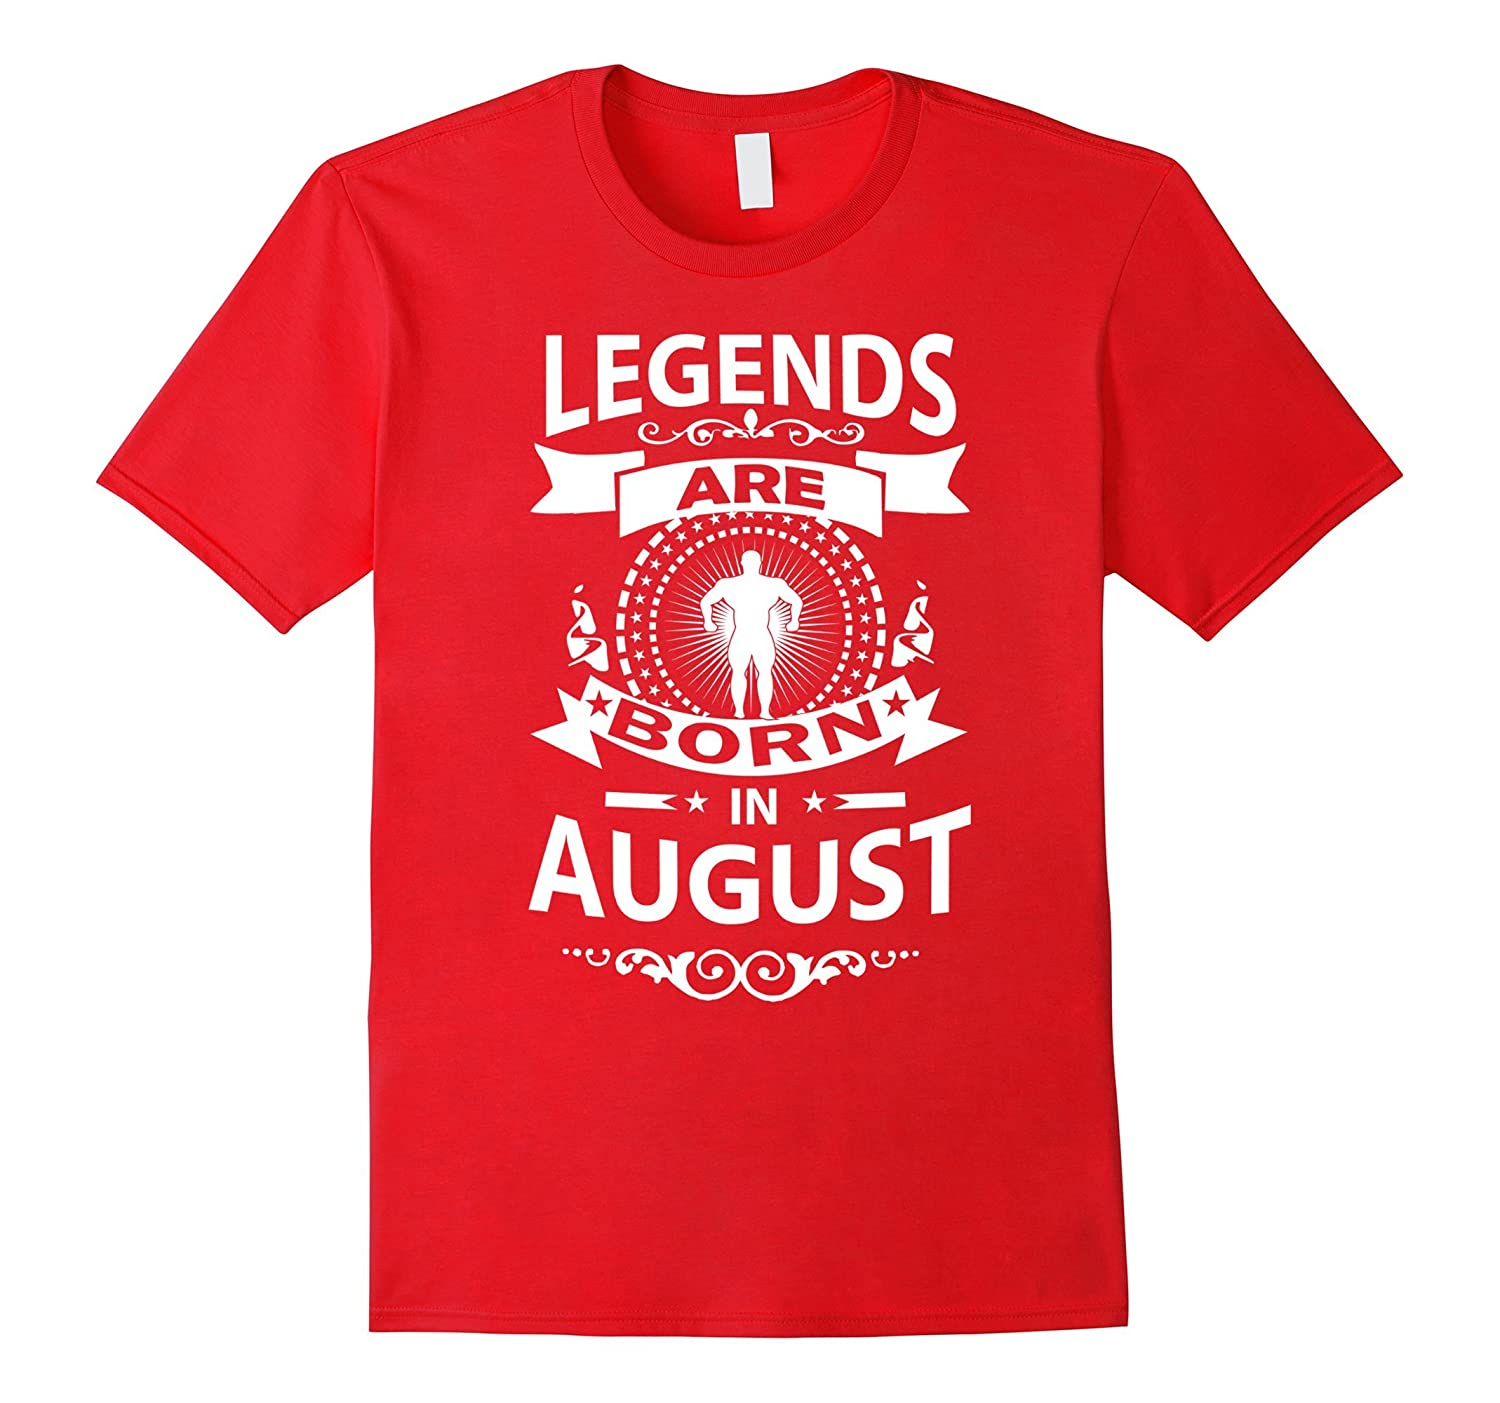 C342 LEGENDS ARE BORN IN AUGUST Gym T-Shirt Workout Fitness-PL